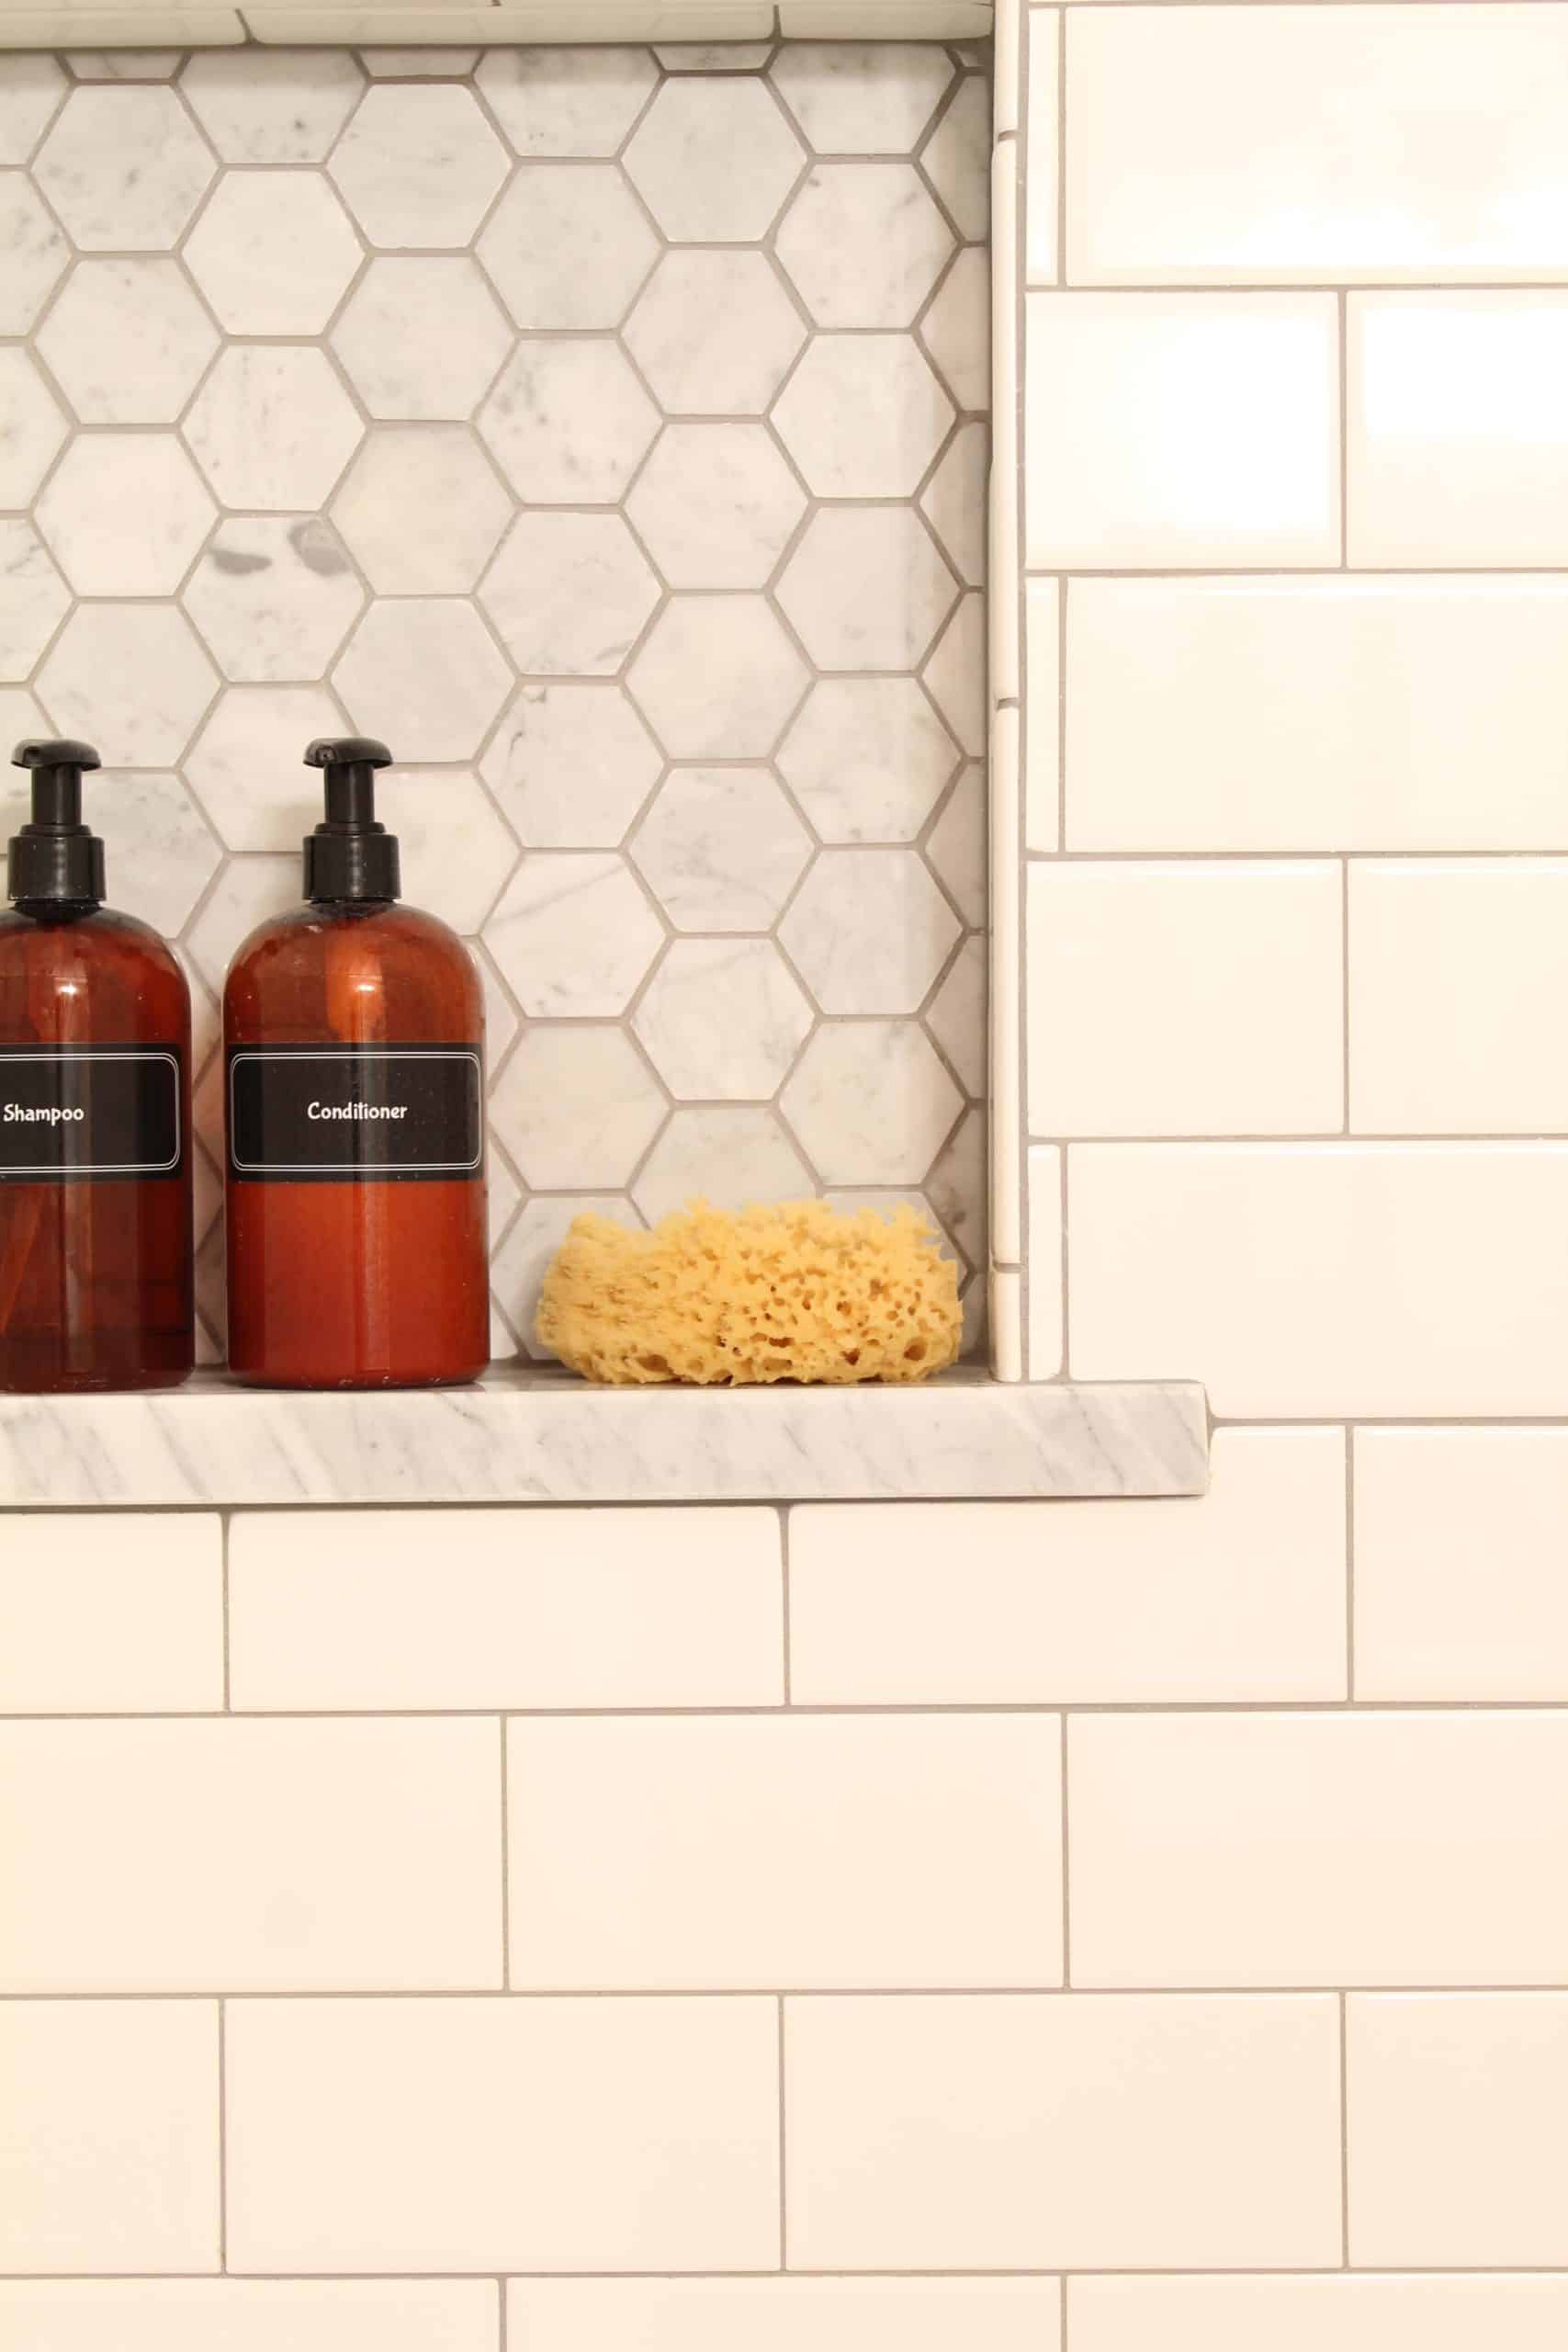 anthropologie botanica shower curtain, bathroom with pink walls, white subway tile shower surround, amber shampoo and conditioner bottles